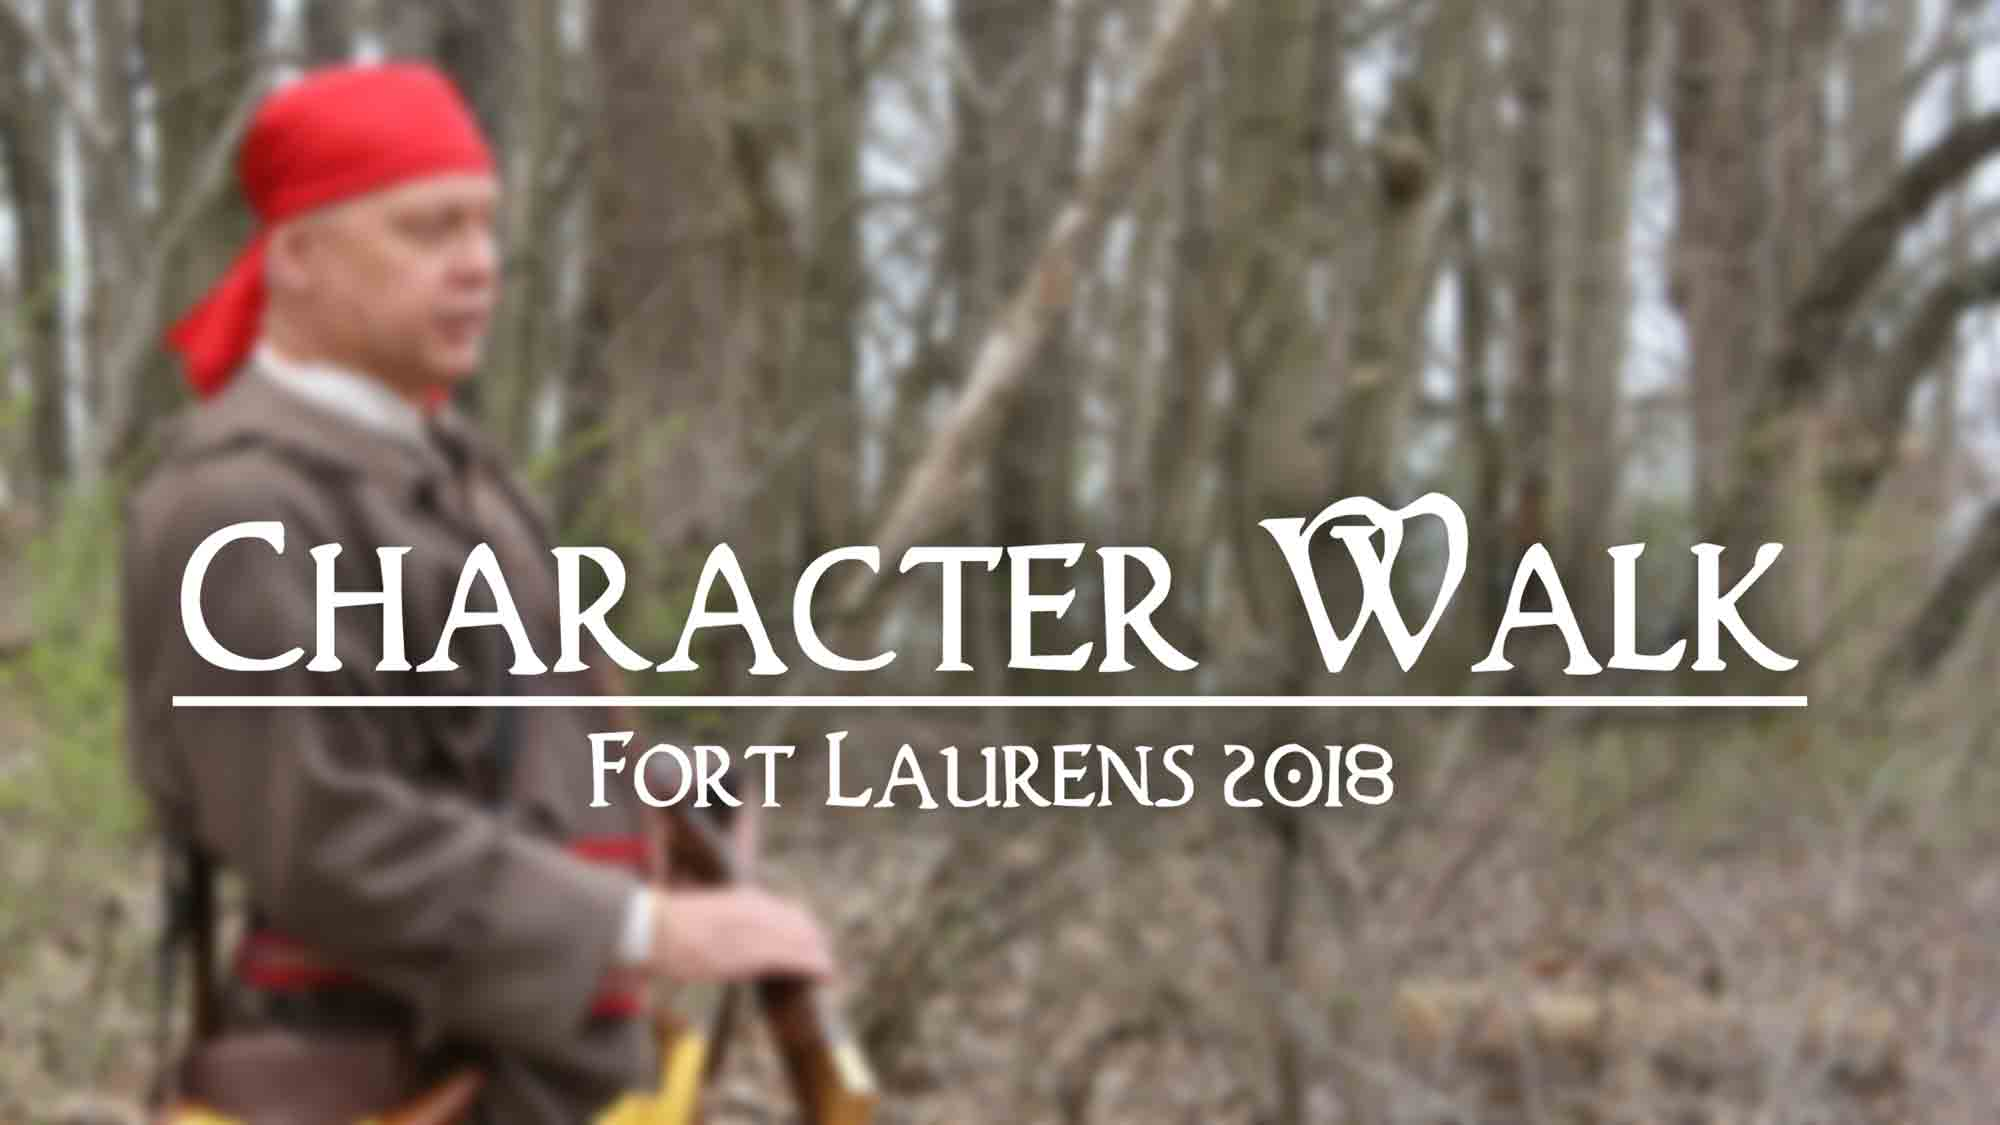 Character Walk - Fort Laurens 2018